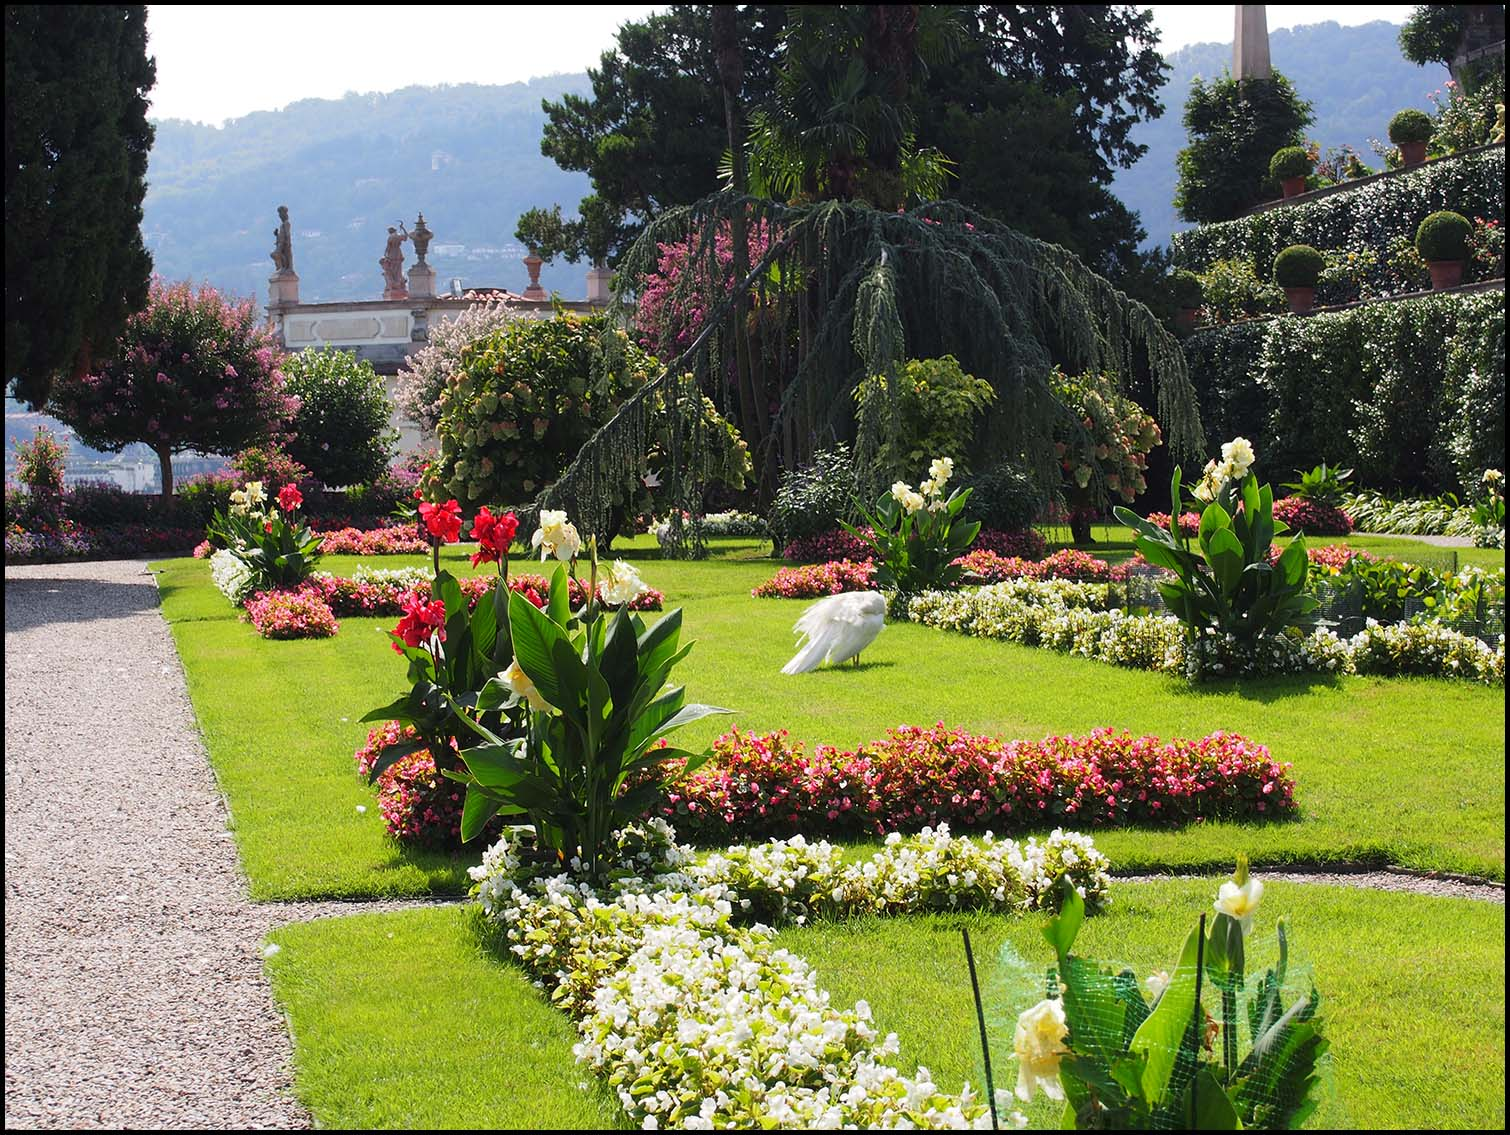 Garden at Isola Bella